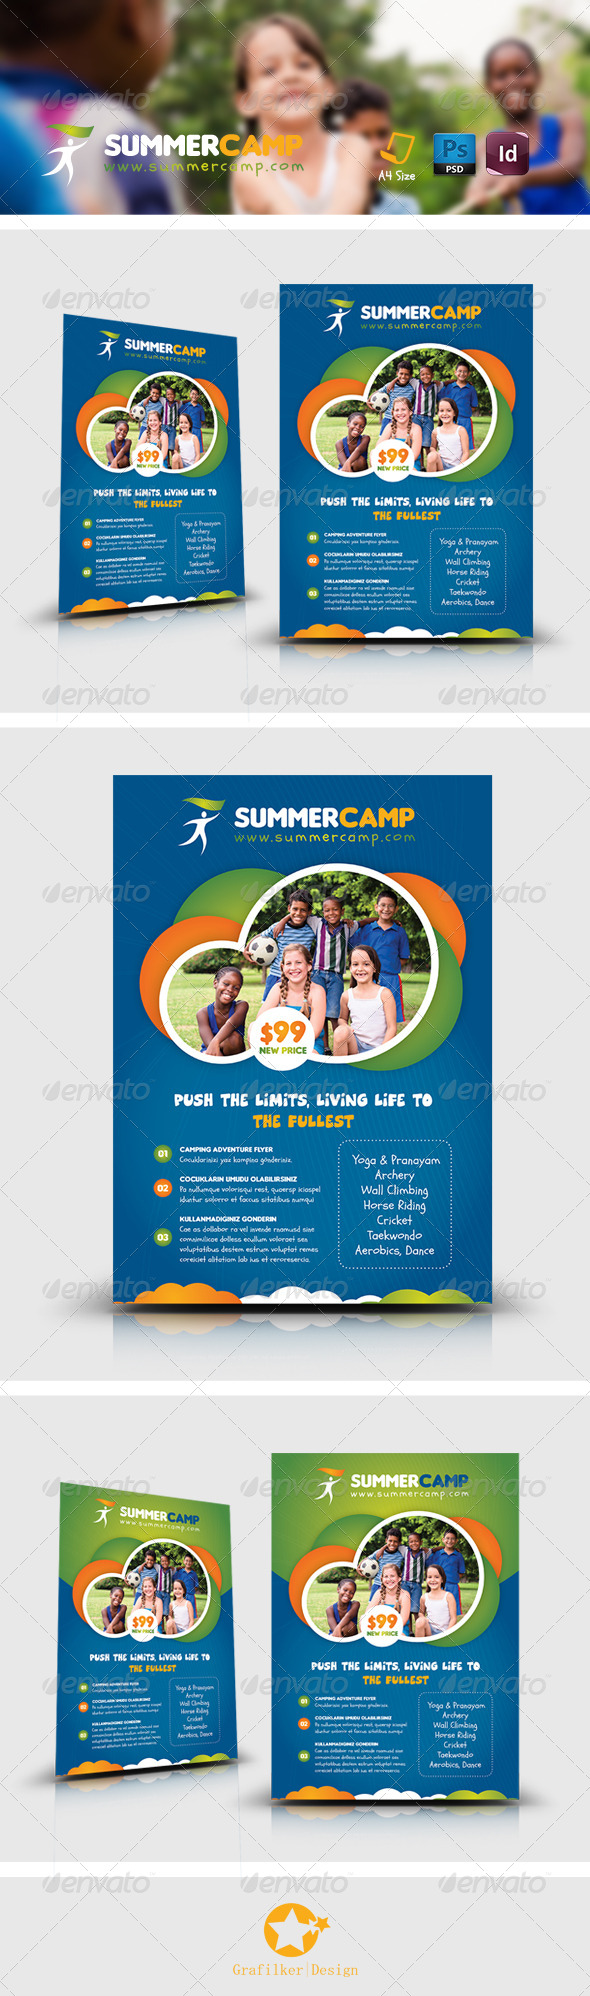 GraphicRiver Summer Camp Flyer Templates 8205868